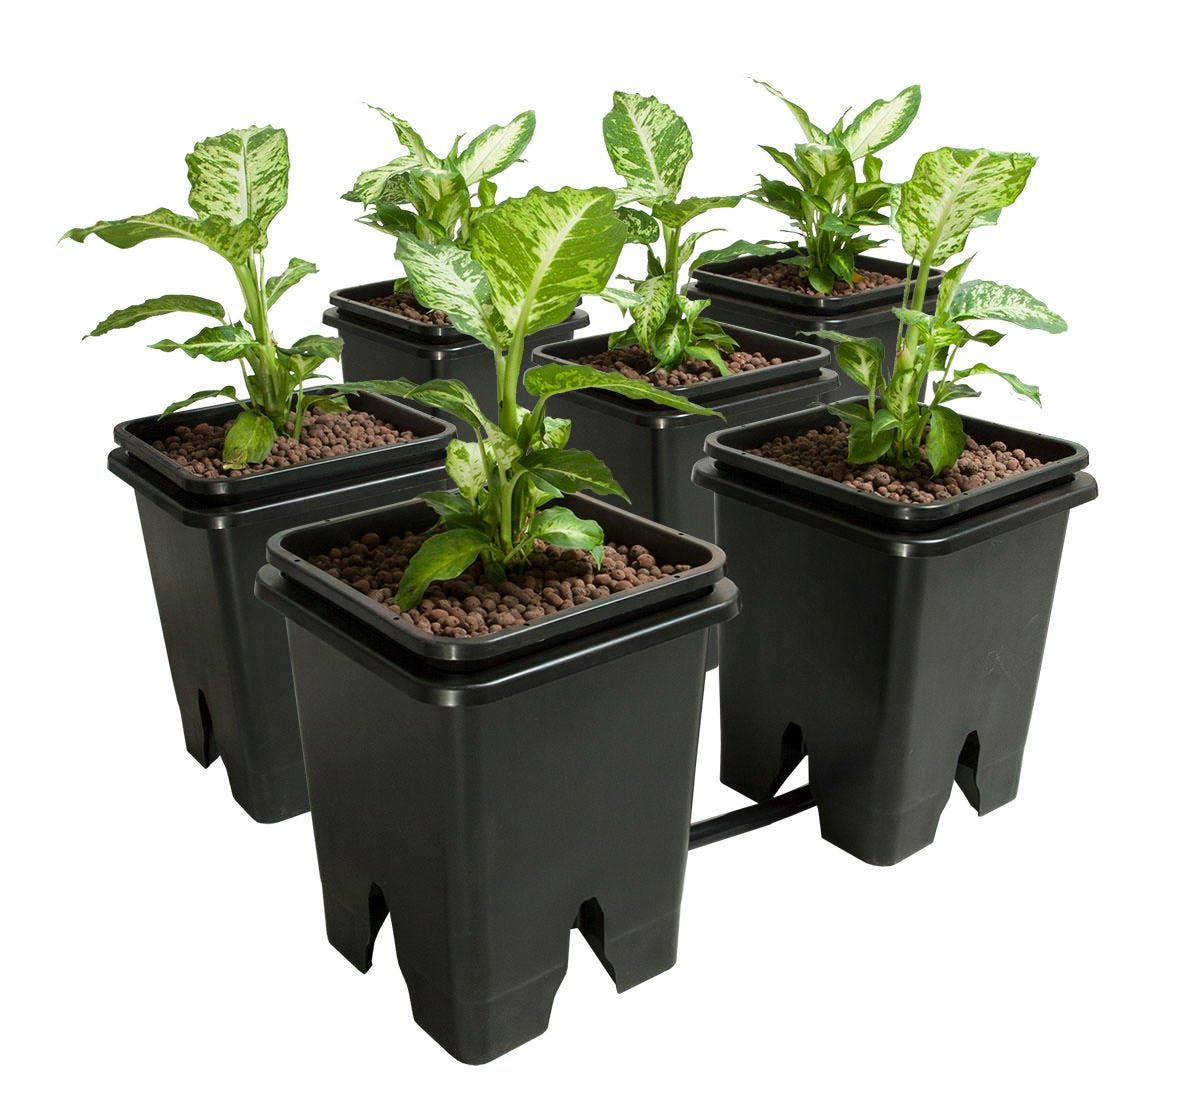 Active Aqua Grow Flow 5-Gal Expansion Kit 3/4  6 pot, 5 Gal This expansion kit supports our Grow Flow Ebb and Gro Controller unit. Maximize the performance of that system by adding six more buckets through this pack. These buckets work with all ebb and flow controllers, so you can augment whatever setup you've already got in place or are thinking of adding to your grow room. With multiple kits, your growing knows little bounds! Expand your ebb & flow system up to 48 plant sites on one control unit - depending on reservoir size - control unit and reservoir sold separately. Includes 6 - Outer buckets 6 - Inner buckets 6 - 3/4  barbed tee connectors 3 - 3/4  barbed elbow 6 - Screen fittings 12 - Rubber washers 1 - 25' roll of 3/4  tubing Features Centered drain fitting minimizes standing water Unique aeration channels for improved root health Each bucket holds approximately 13L of clay pebbles or similar medium *A control unit and reservoir (sold separately) are required to use this expansion pack